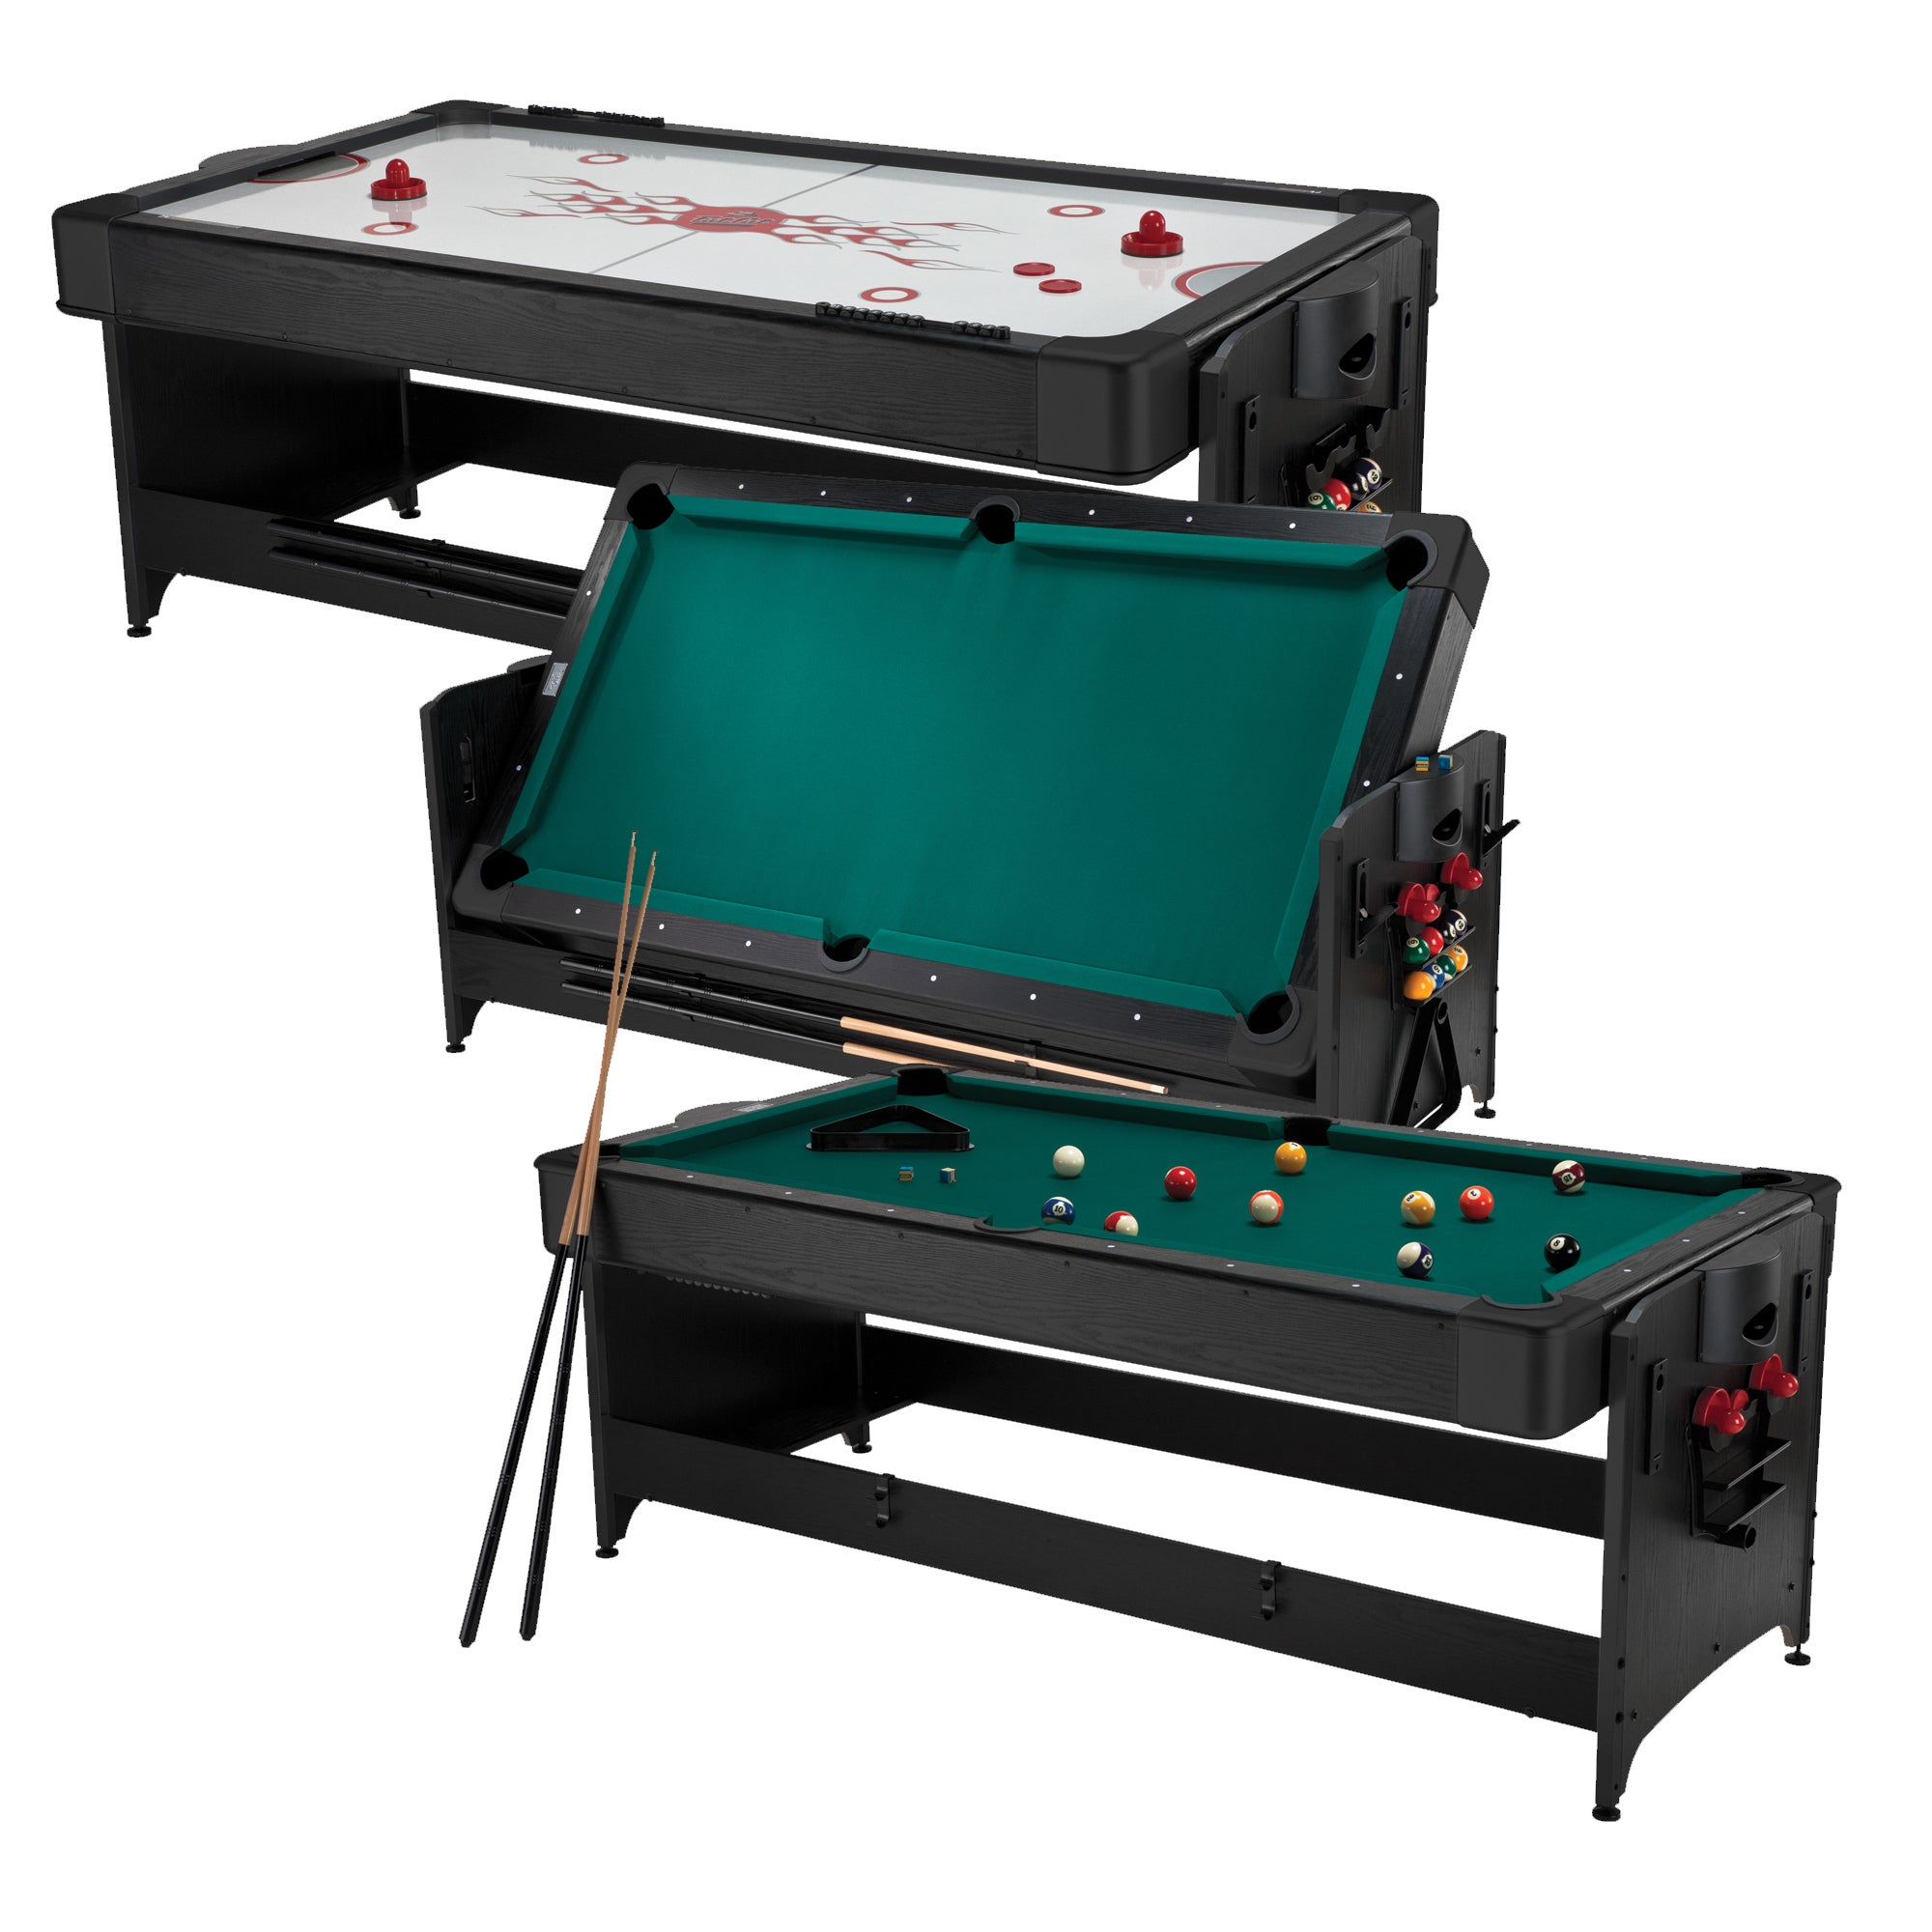 baltimore viper call relocation pool pin moving virginia table disassembly washington foot billiard maryland dc reno